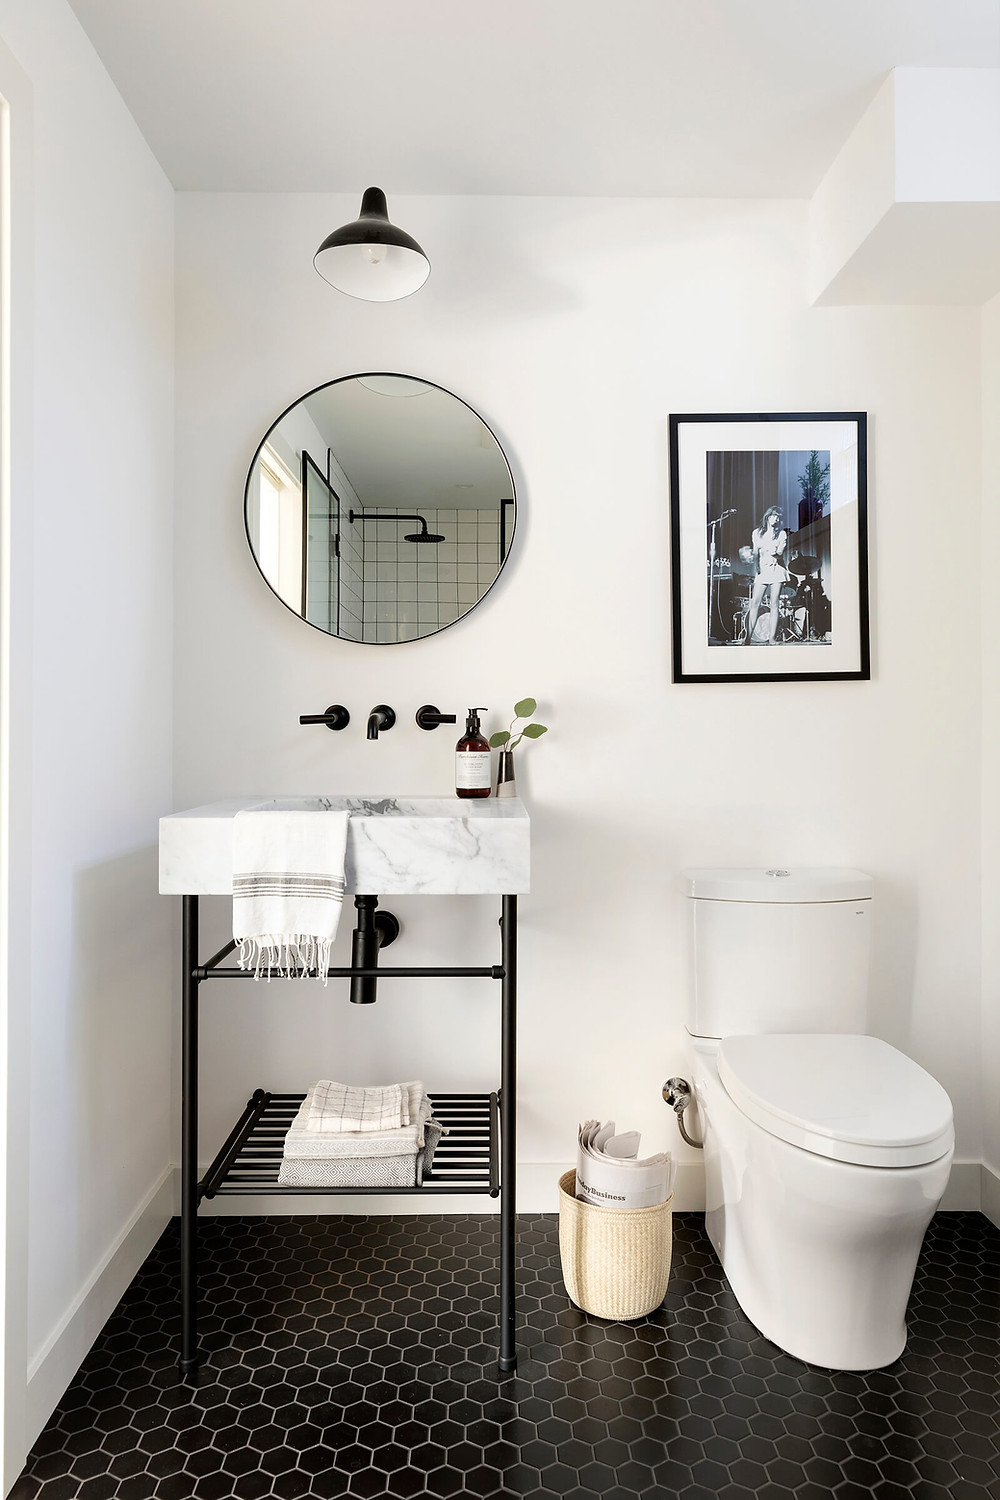 Custom marble console vanity in black and white bathroom with black hexagon floor tile, wall mount faucet and plumbing fixtures